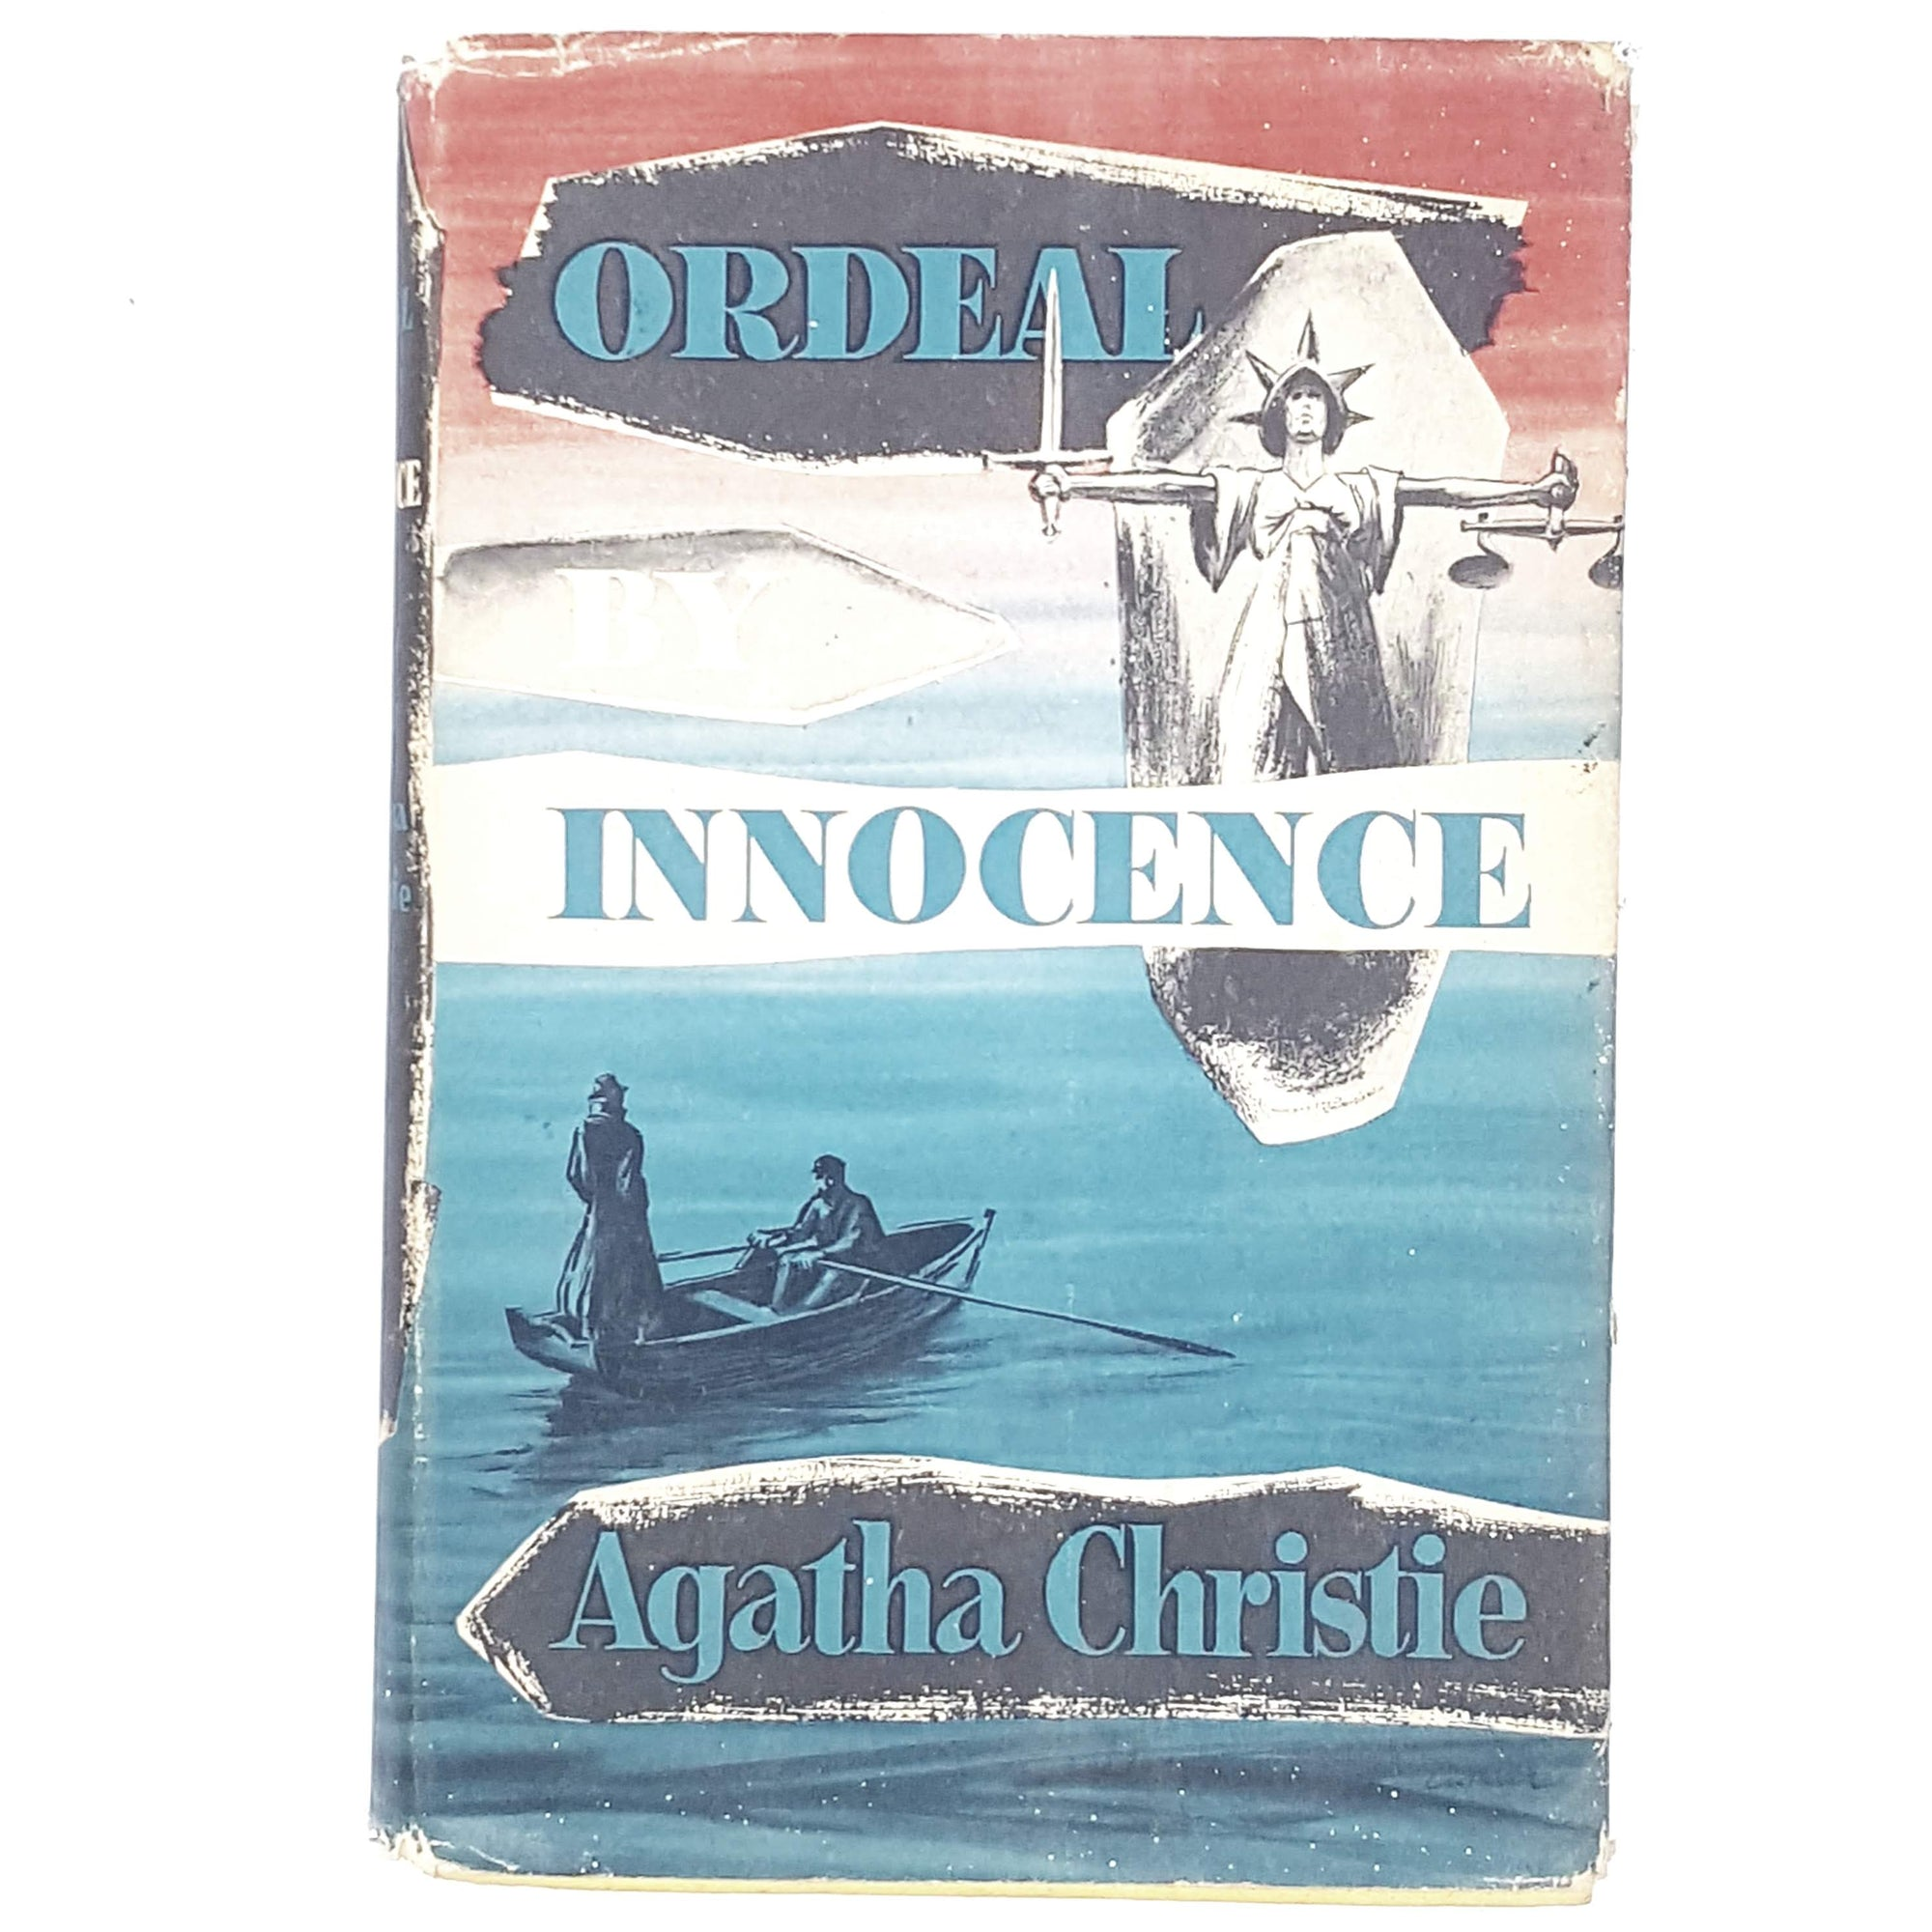 Agatha Christie's Ordeal by Innocence 1959